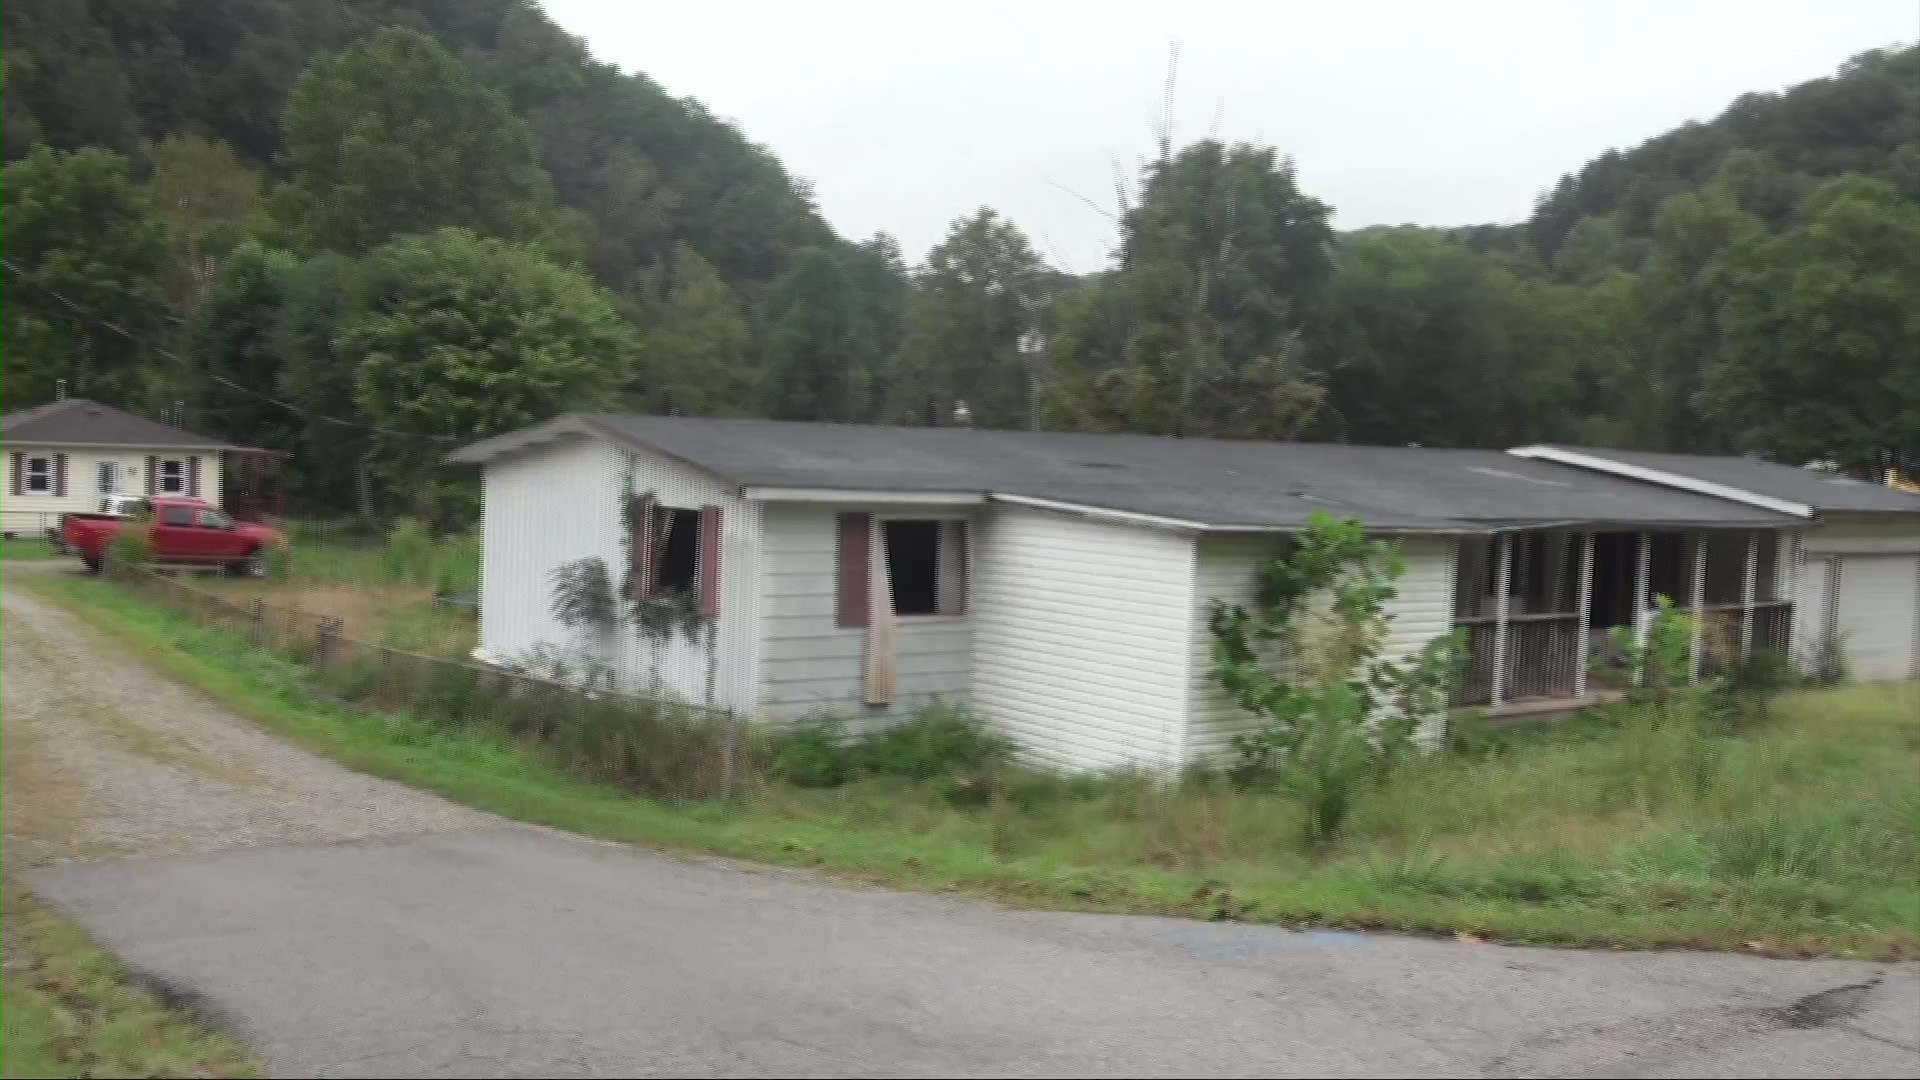 WORKING FOR YOU: Neighbors concerned about flooded, abandoned home next door